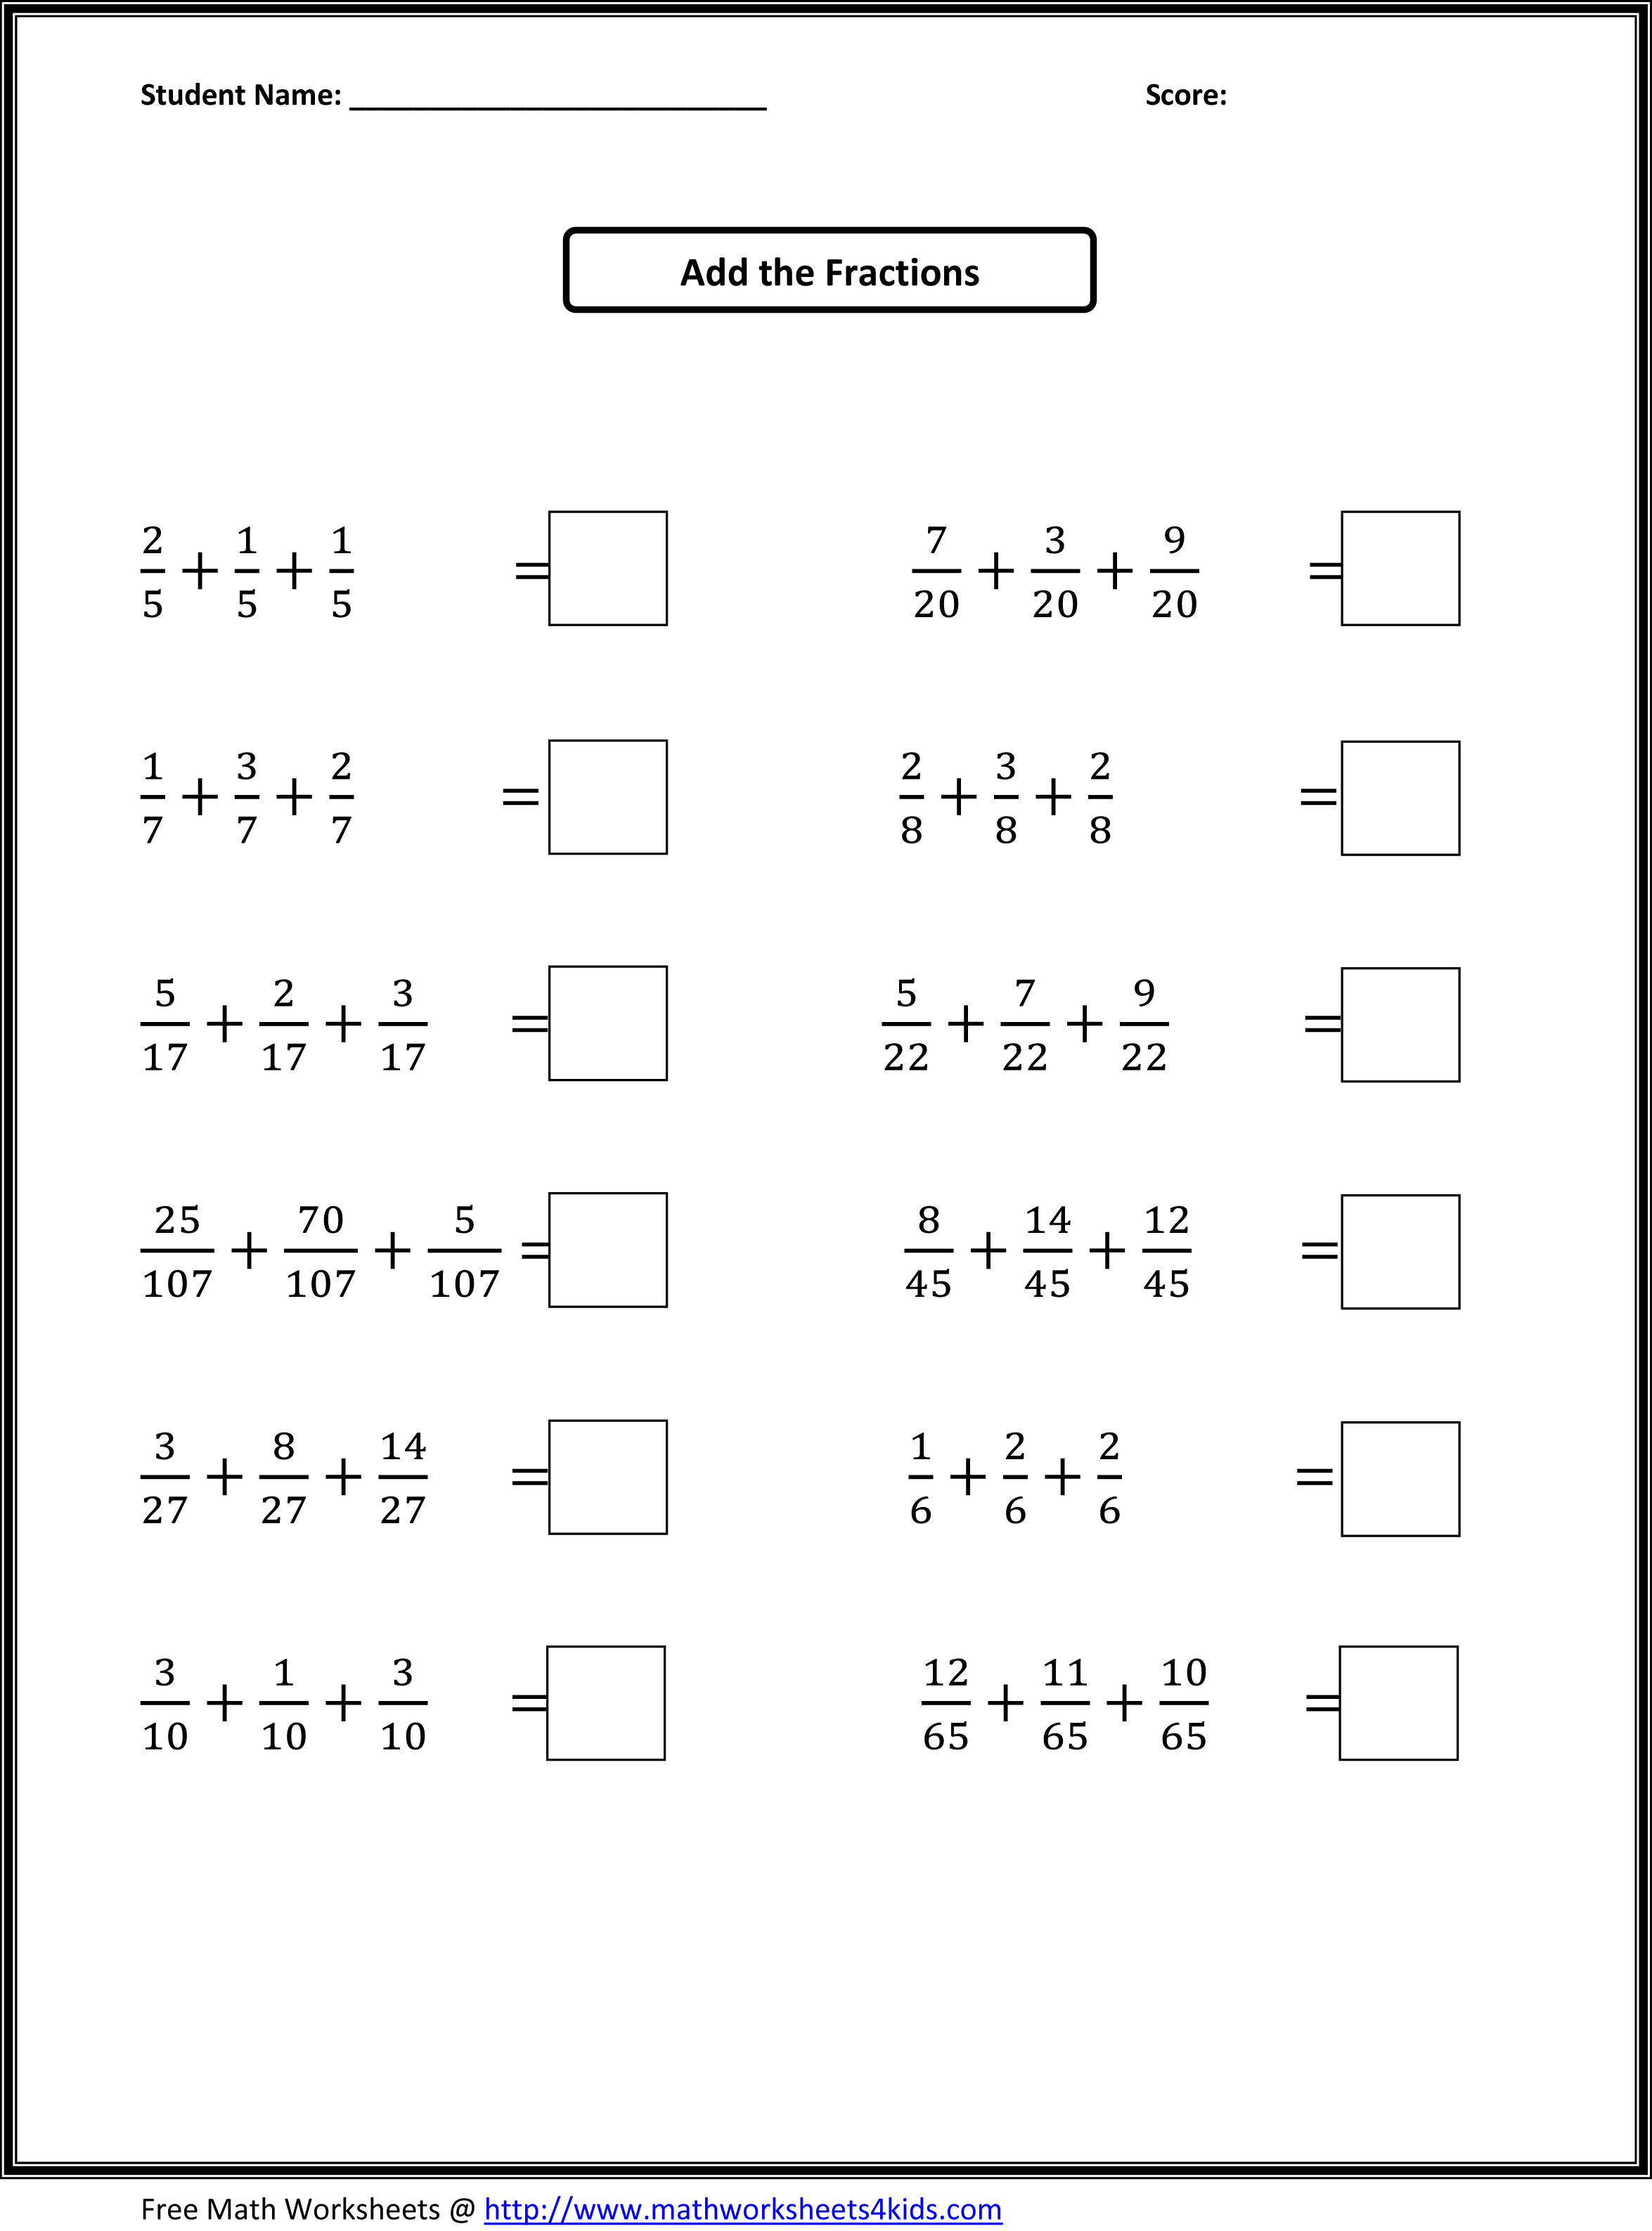 Fraction Worksheets 4th Grade – Fractions Worksheets for 4th Grade